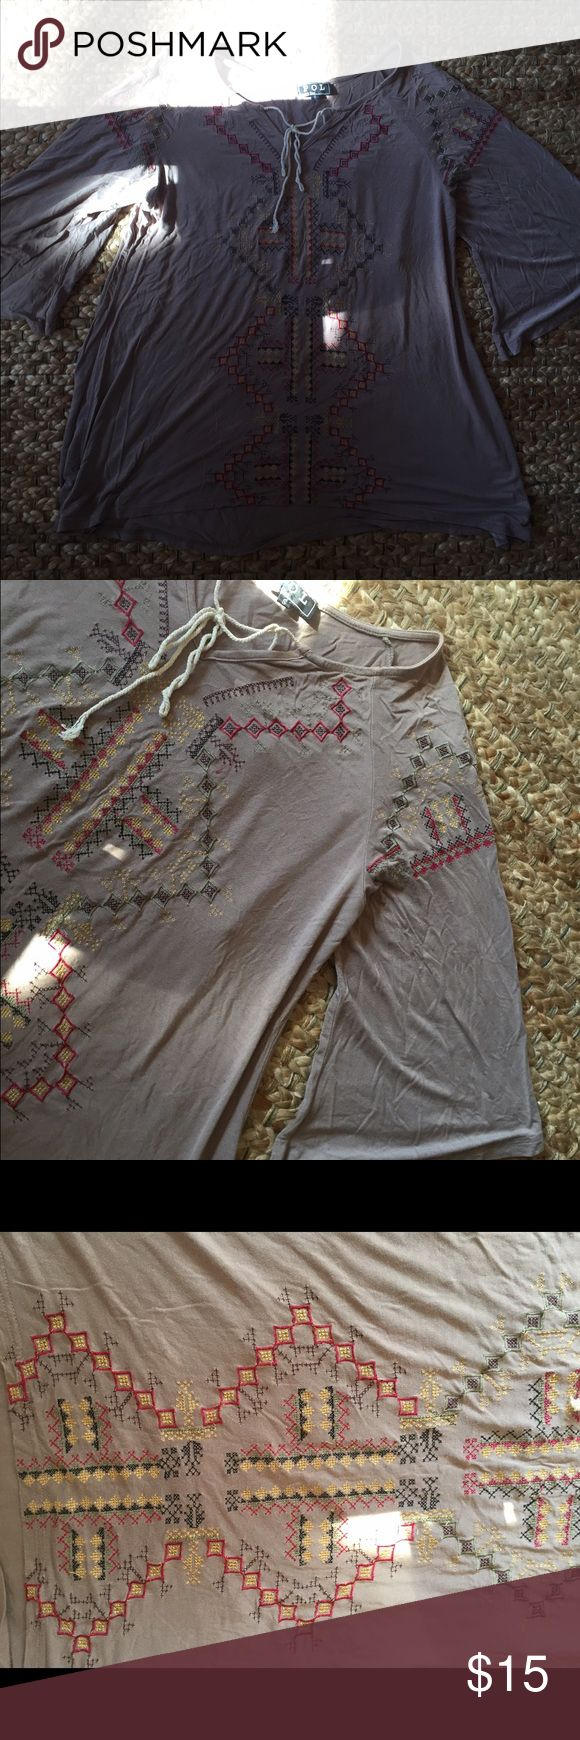 Log sleeve shirt Charcoal grey top with a tie in front. Aztec print. Flowy. Tops Tees - Long Sleeve